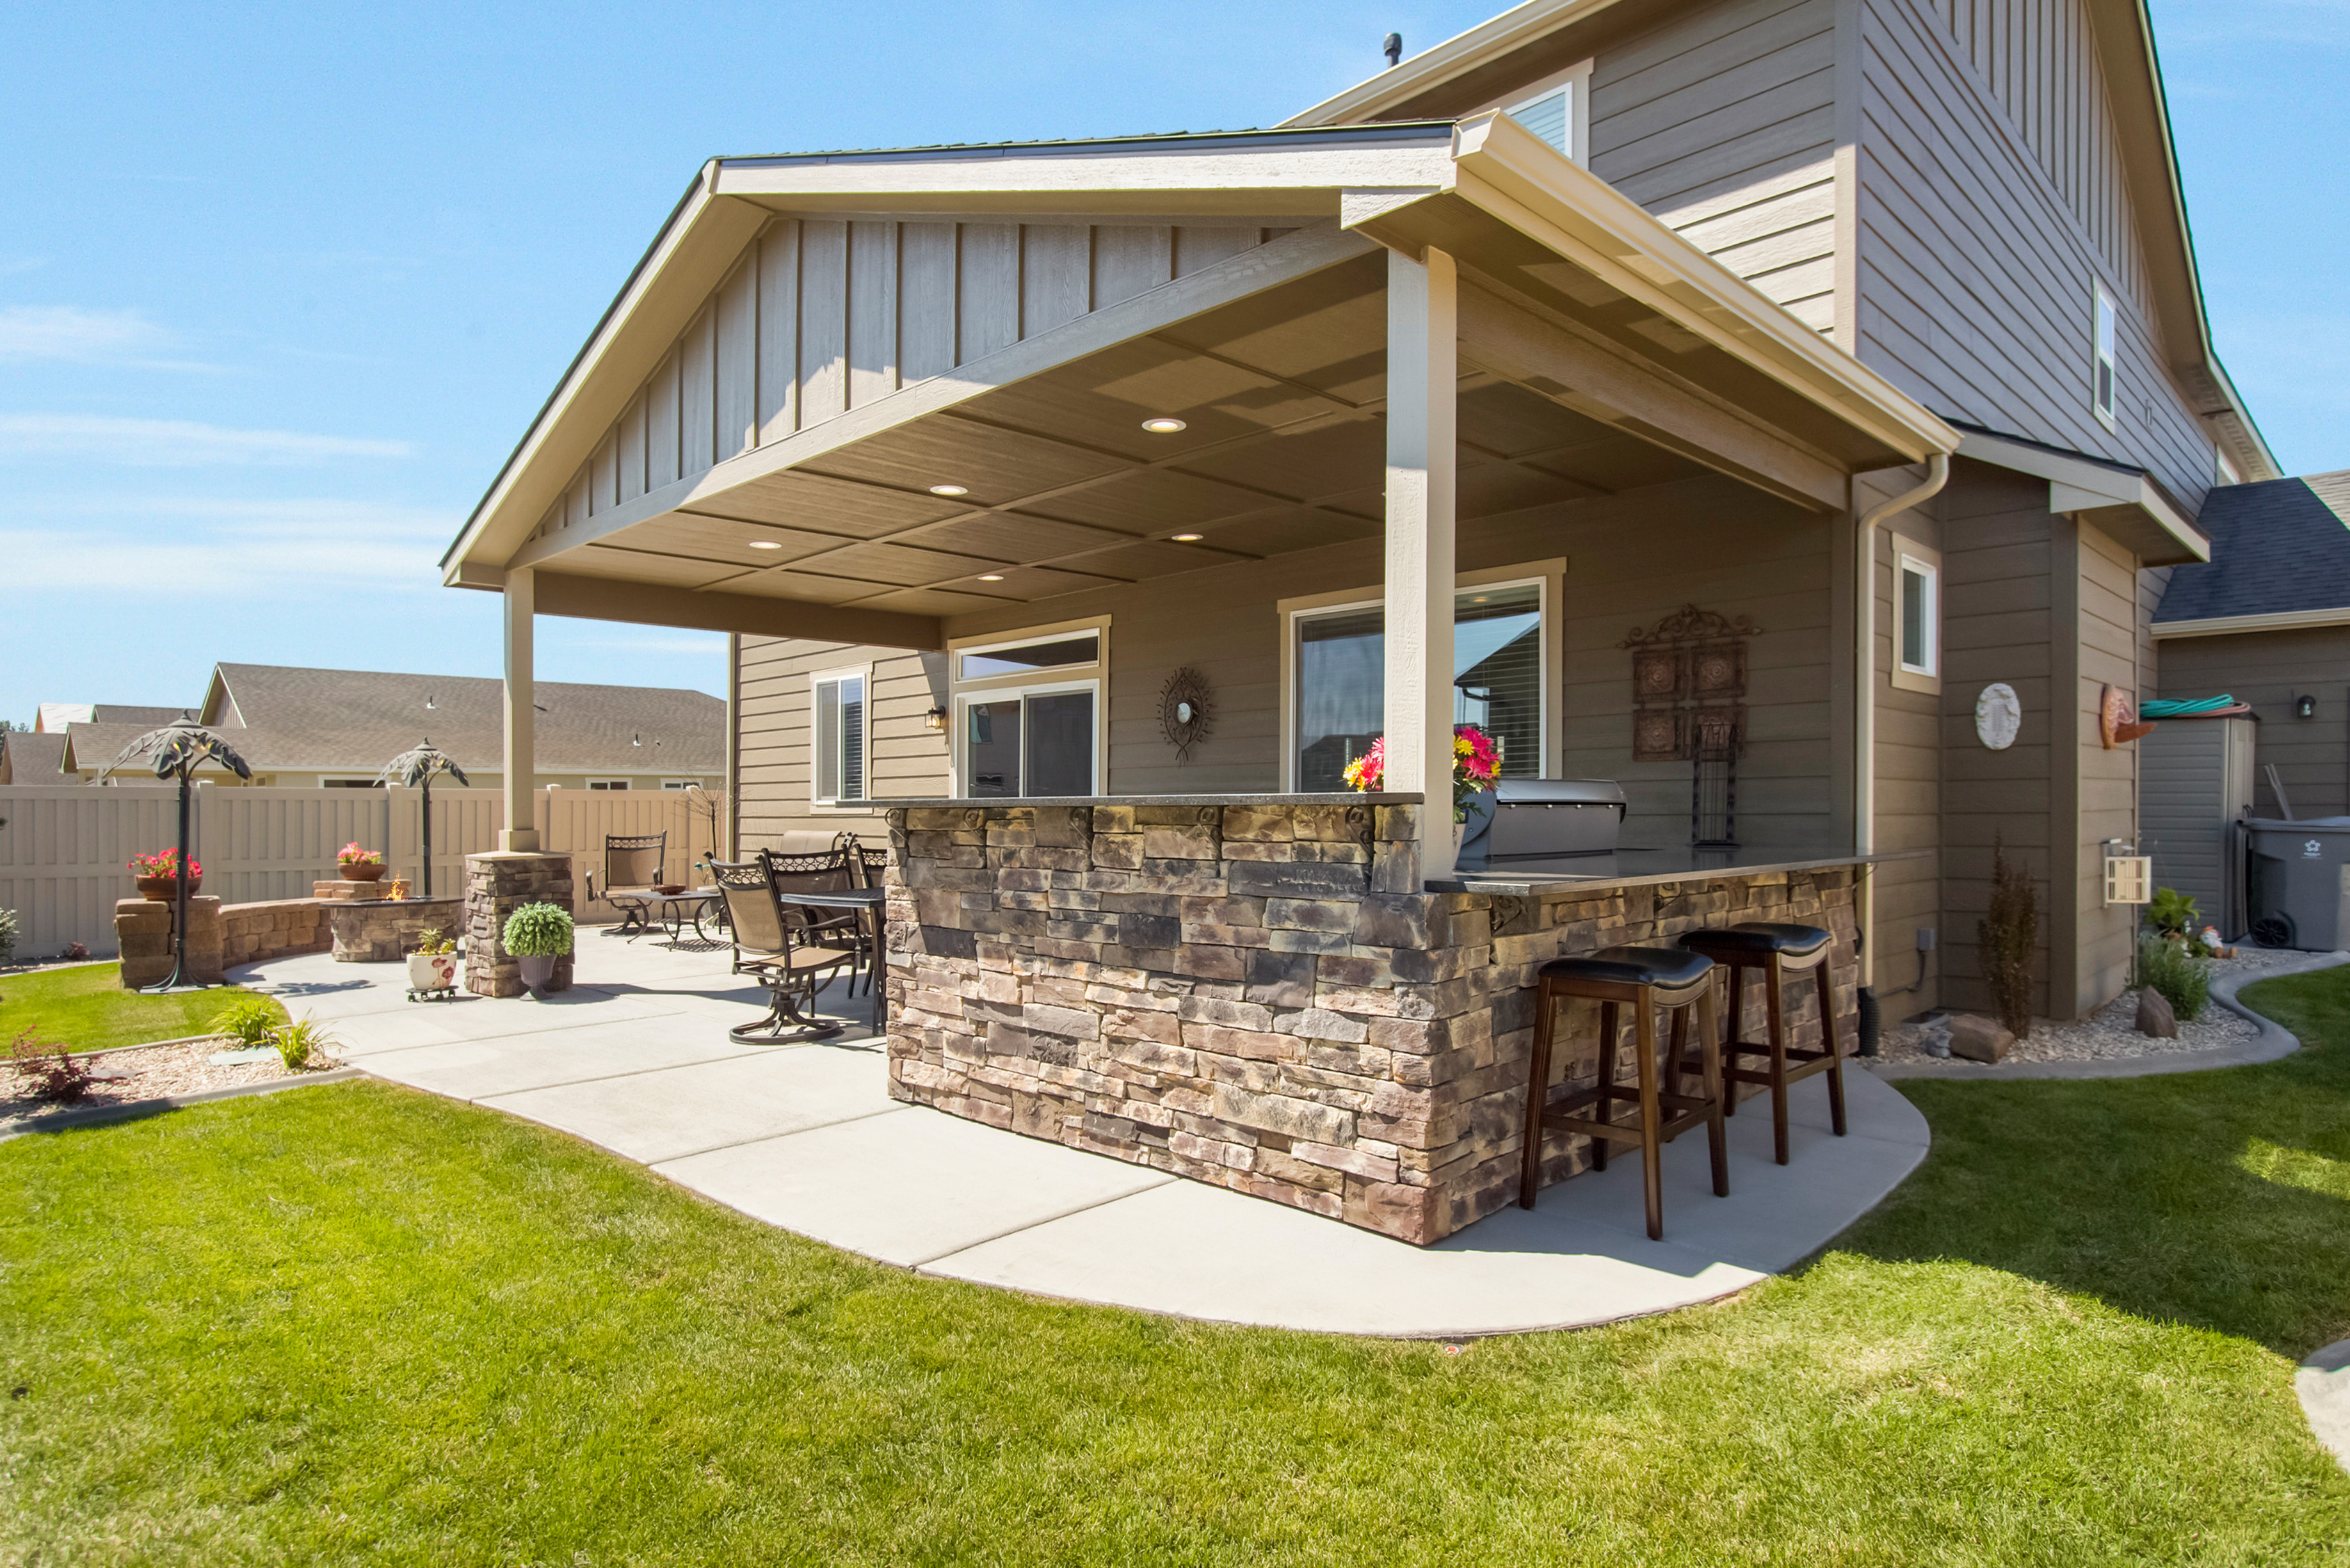 Backyard Ideas For Your New Home Hayden Homes Blog pertaining to 13 Smart Concepts of How to Craft Backyard Pictures Ideas